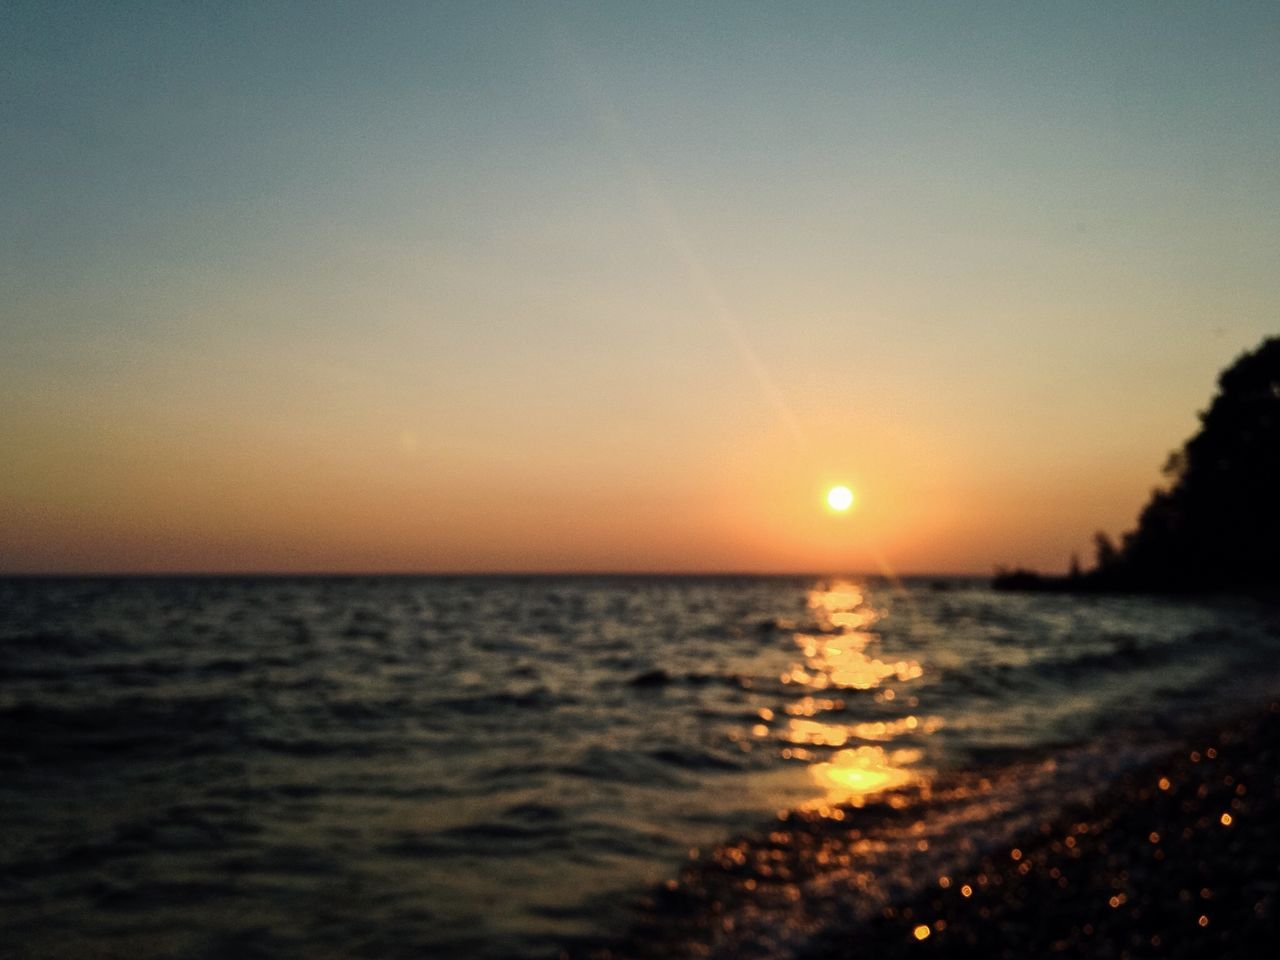 sunset, sea, sun, scenics, tranquility, nature, tranquil scene, water, beauty in nature, sky, idyllic, silhouette, no people, horizon over water, clear sky, landscape, outdoors, horizon